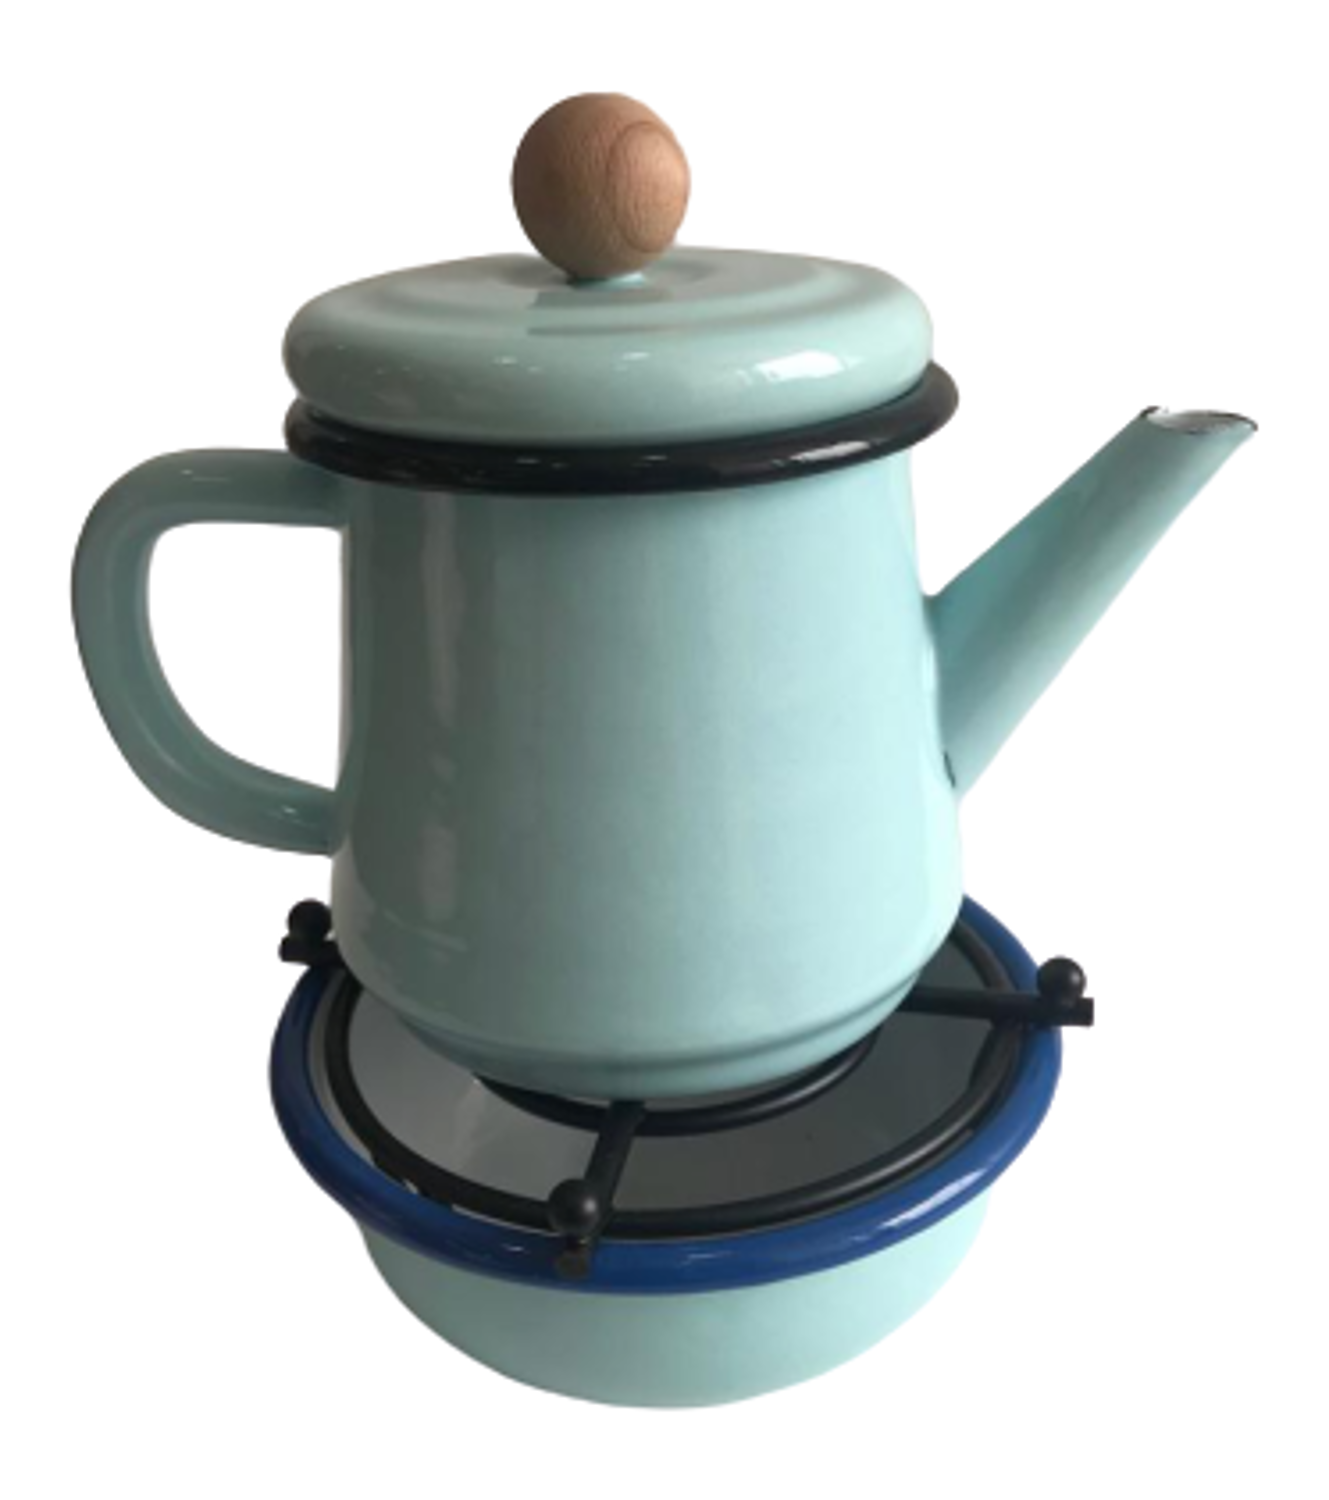 Picture of MEVLANA ENAMEL TEA POT WITH OTTOMAN STOVE - ICE BLUE